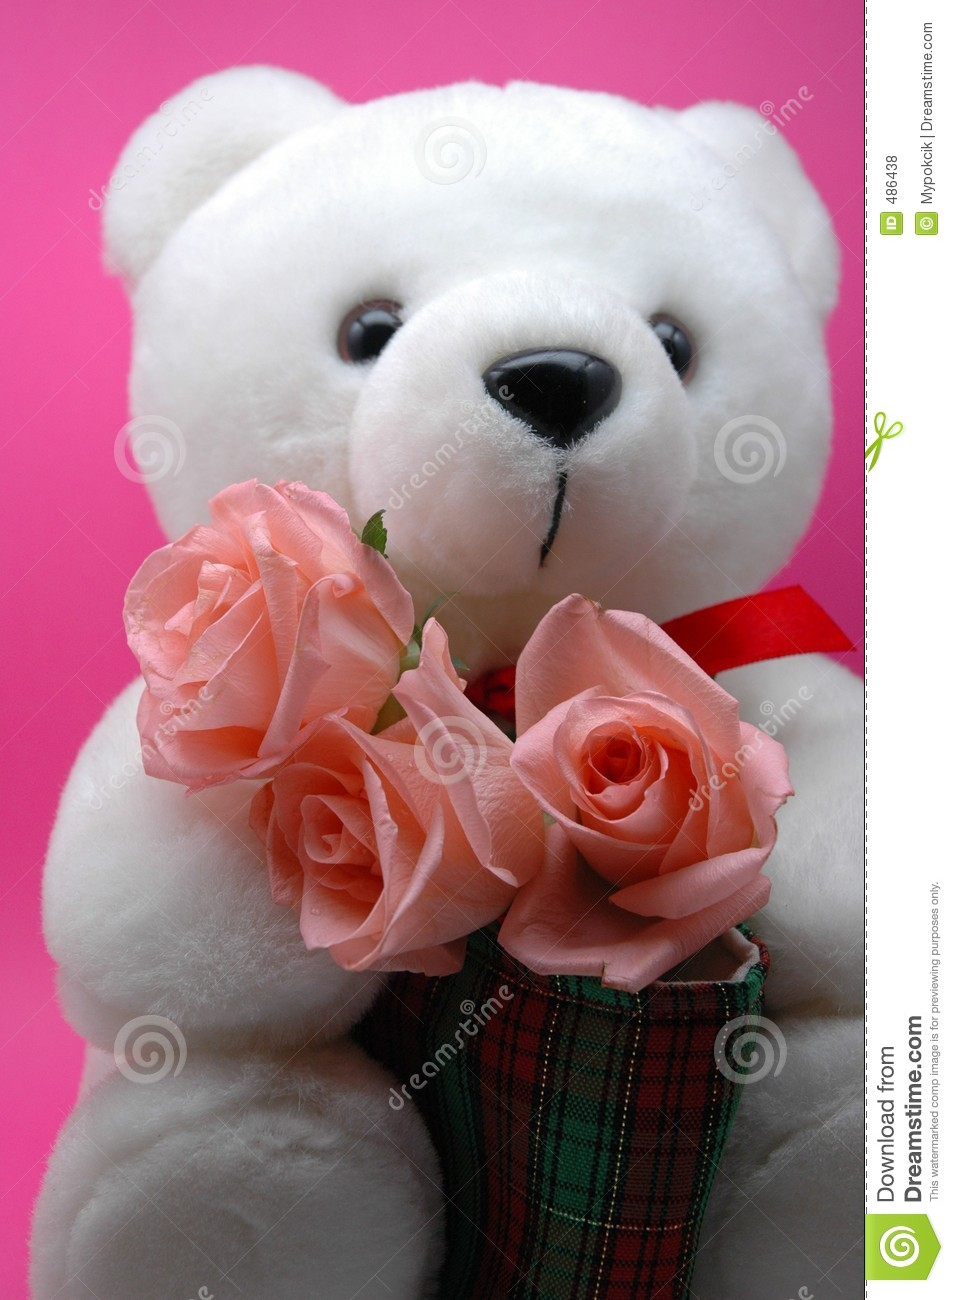 Teddy bear with pink roses - photo#3